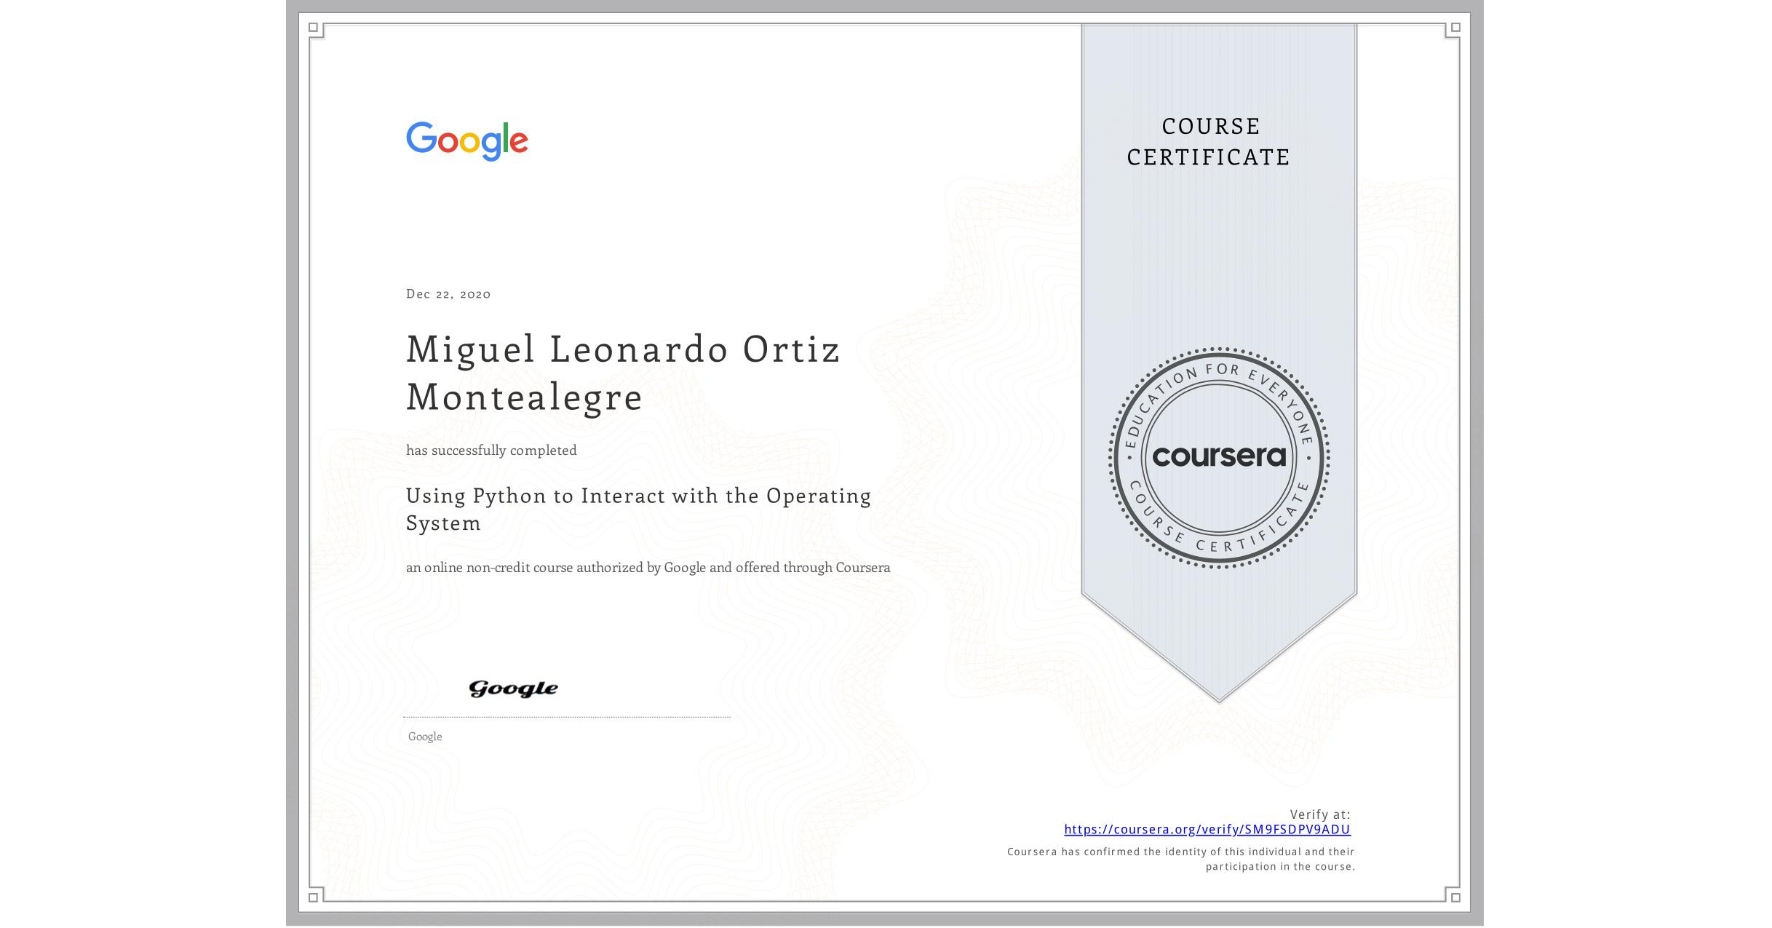 View certificate for Miguel Leonardo Ortiz Montealegre, Using Python to Interact with the Operating System, an online non-credit course authorized by Google and offered through Coursera